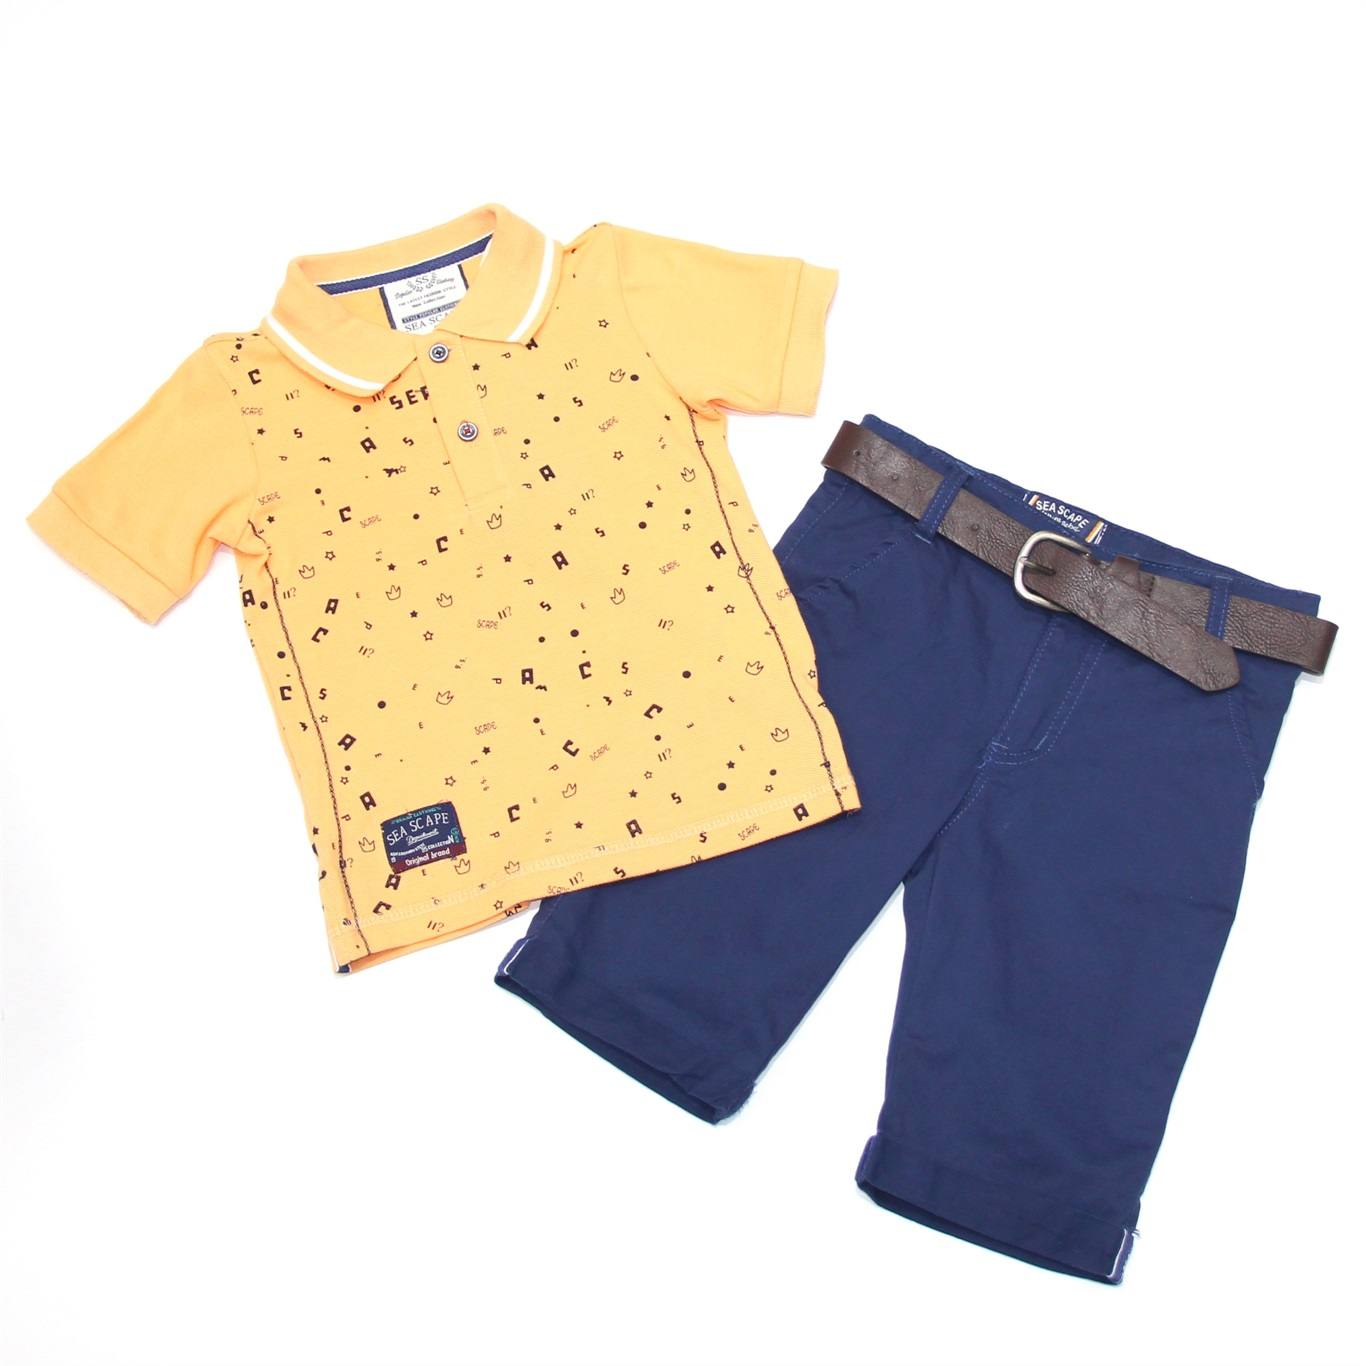 Fashion Graphic Print Short-sleeve Polo Shirt and Pants Set for Toddler Boy